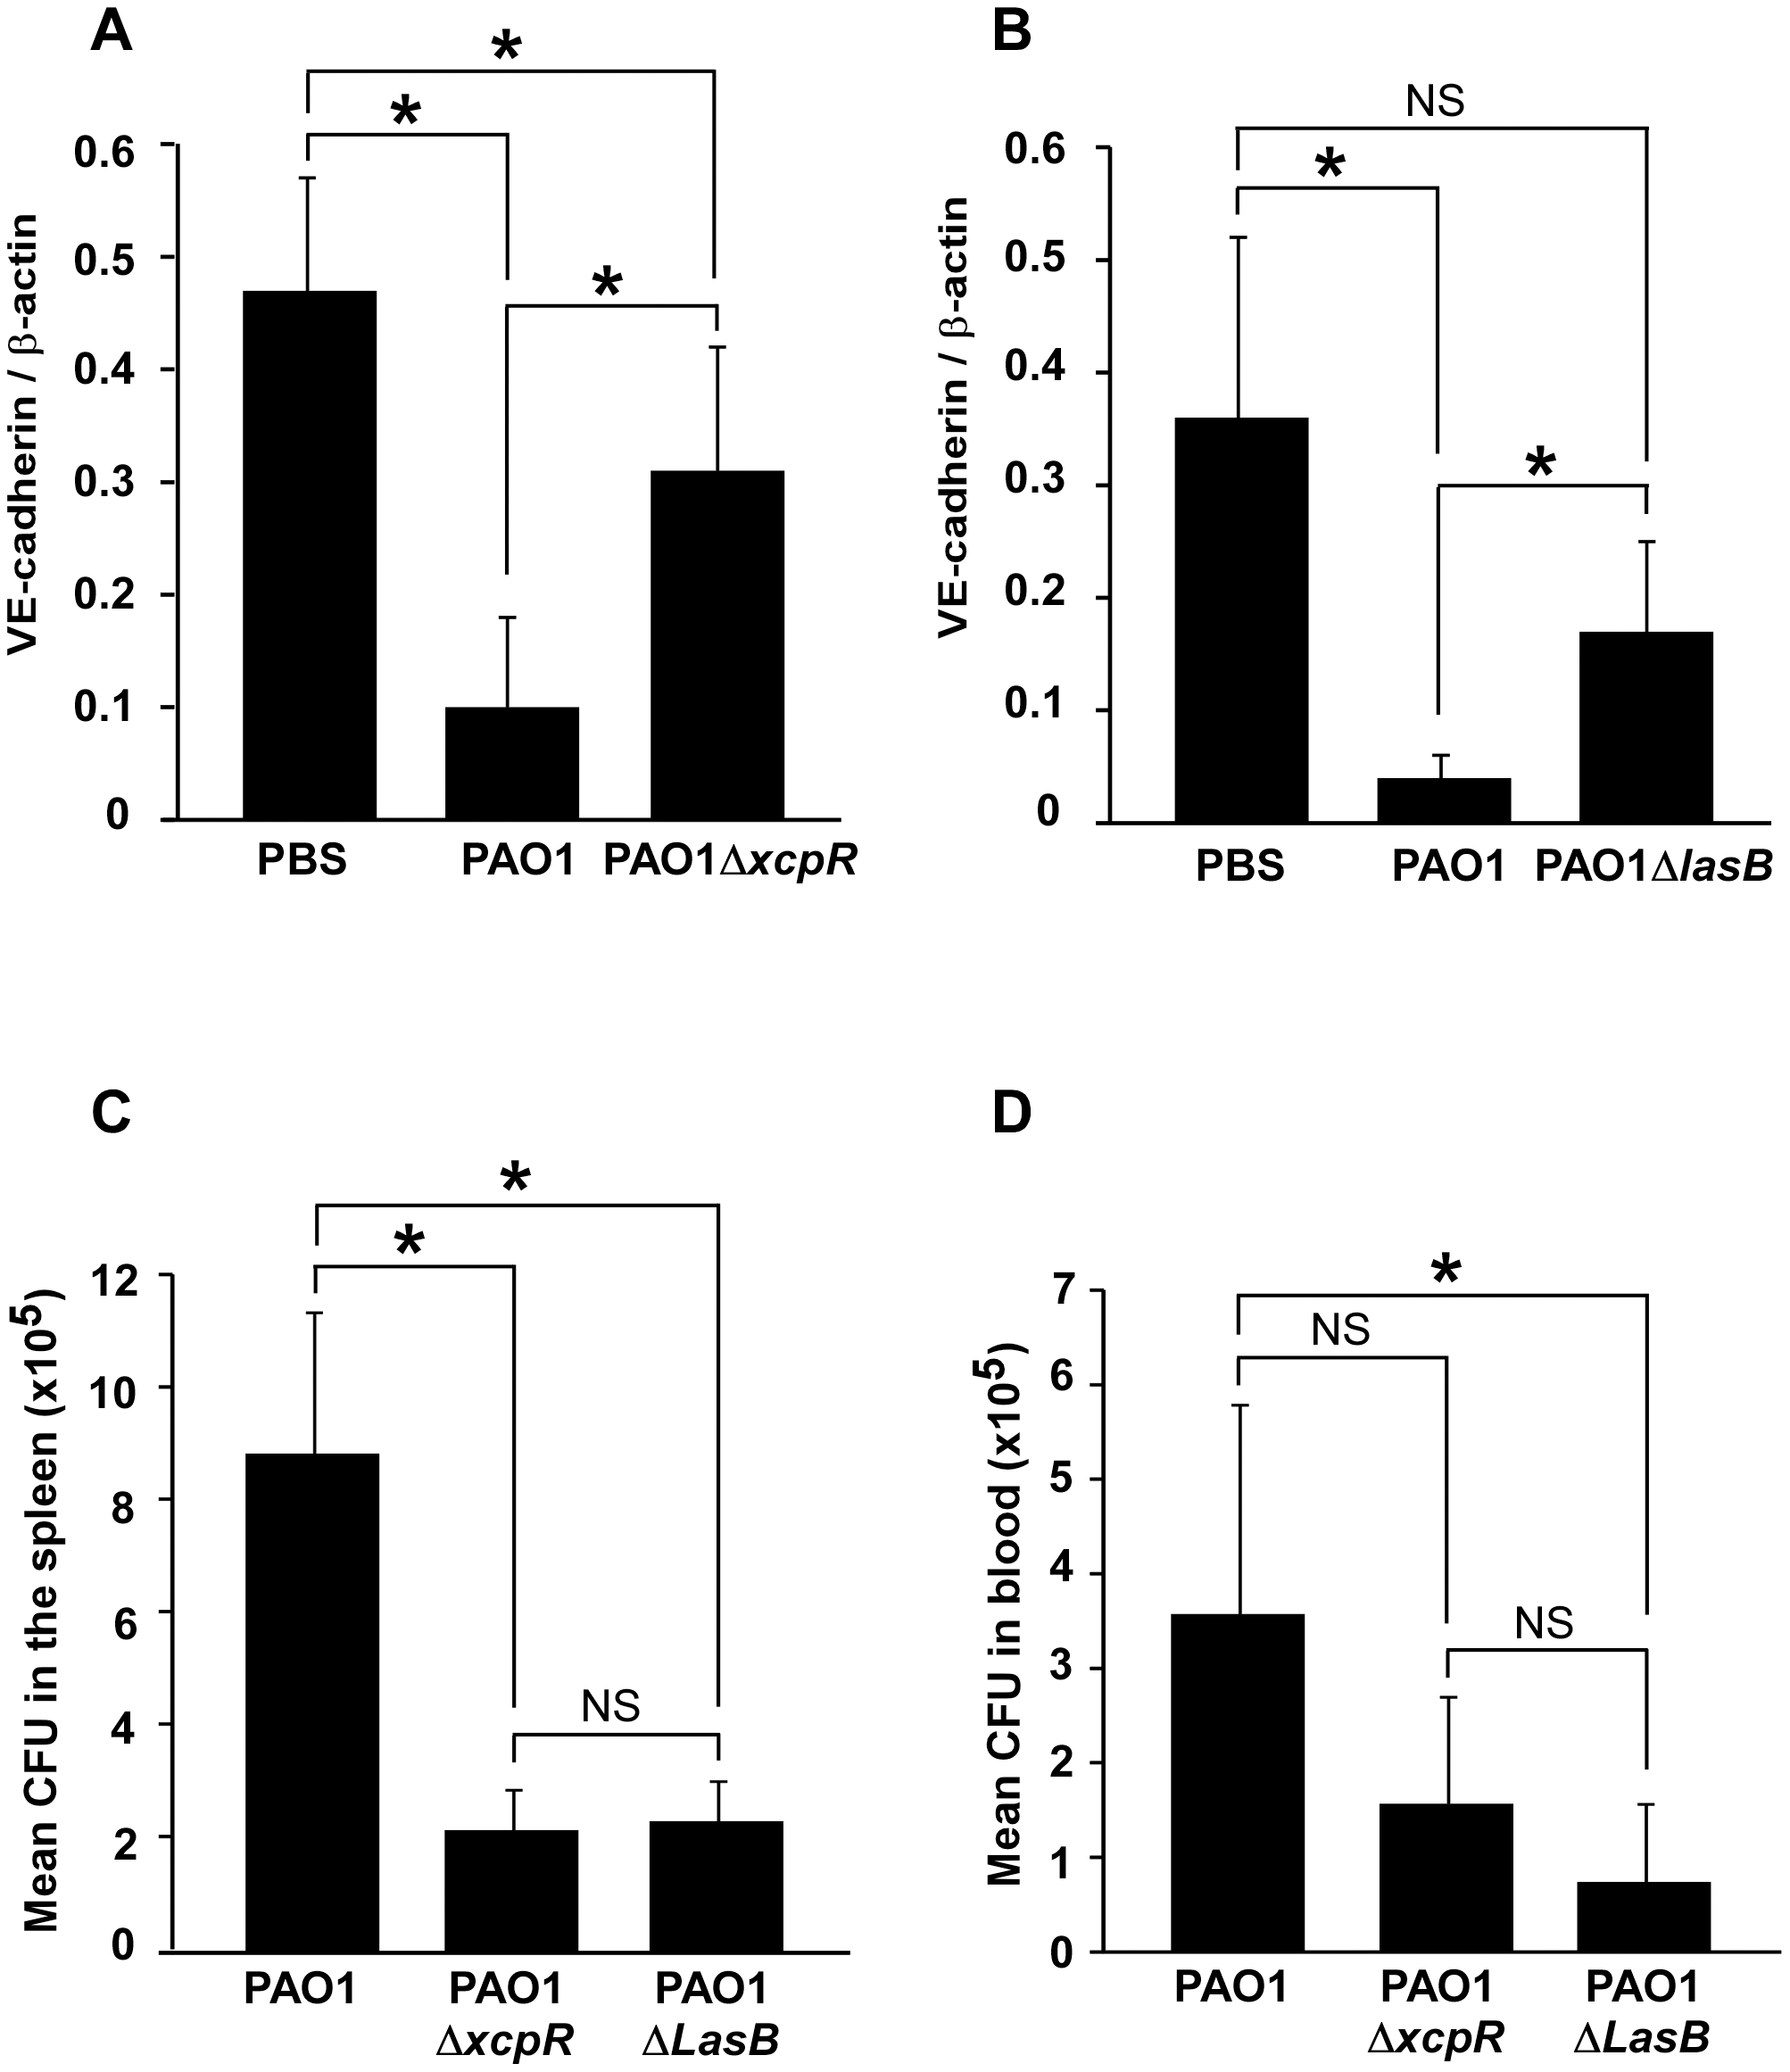 Decreased VE-cadherin levels in mouse acute pneumonia correlated with increased dissemination.